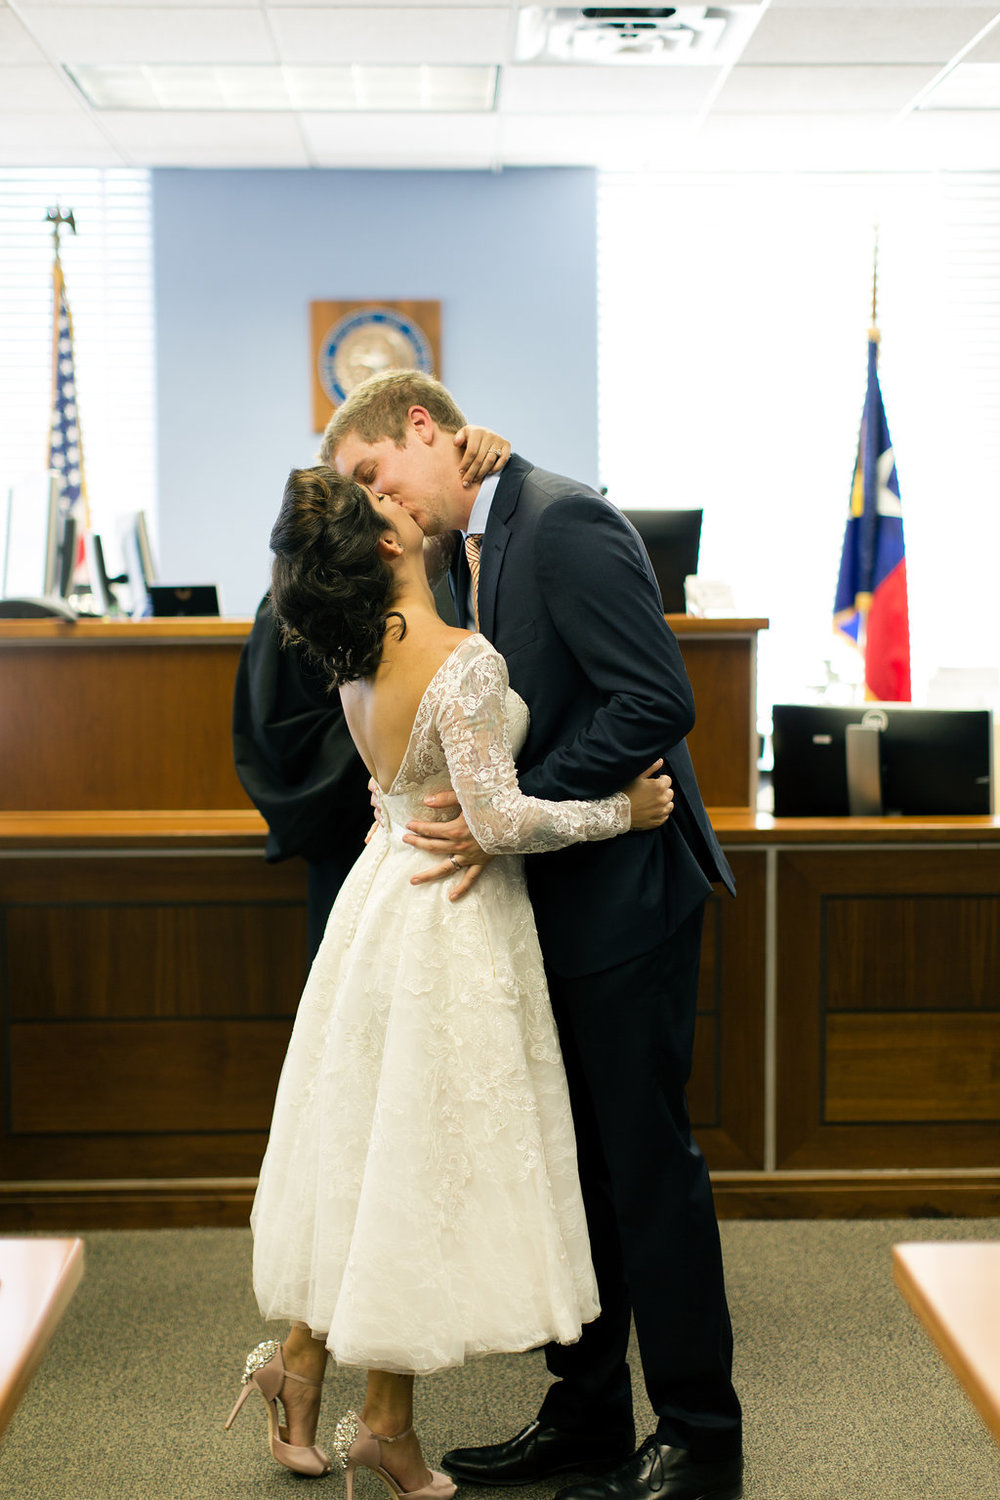 Paige-Newton-Photography-Elopement-Photographer-Austin-Courthouse-Fresas-Chicken0032.jpg